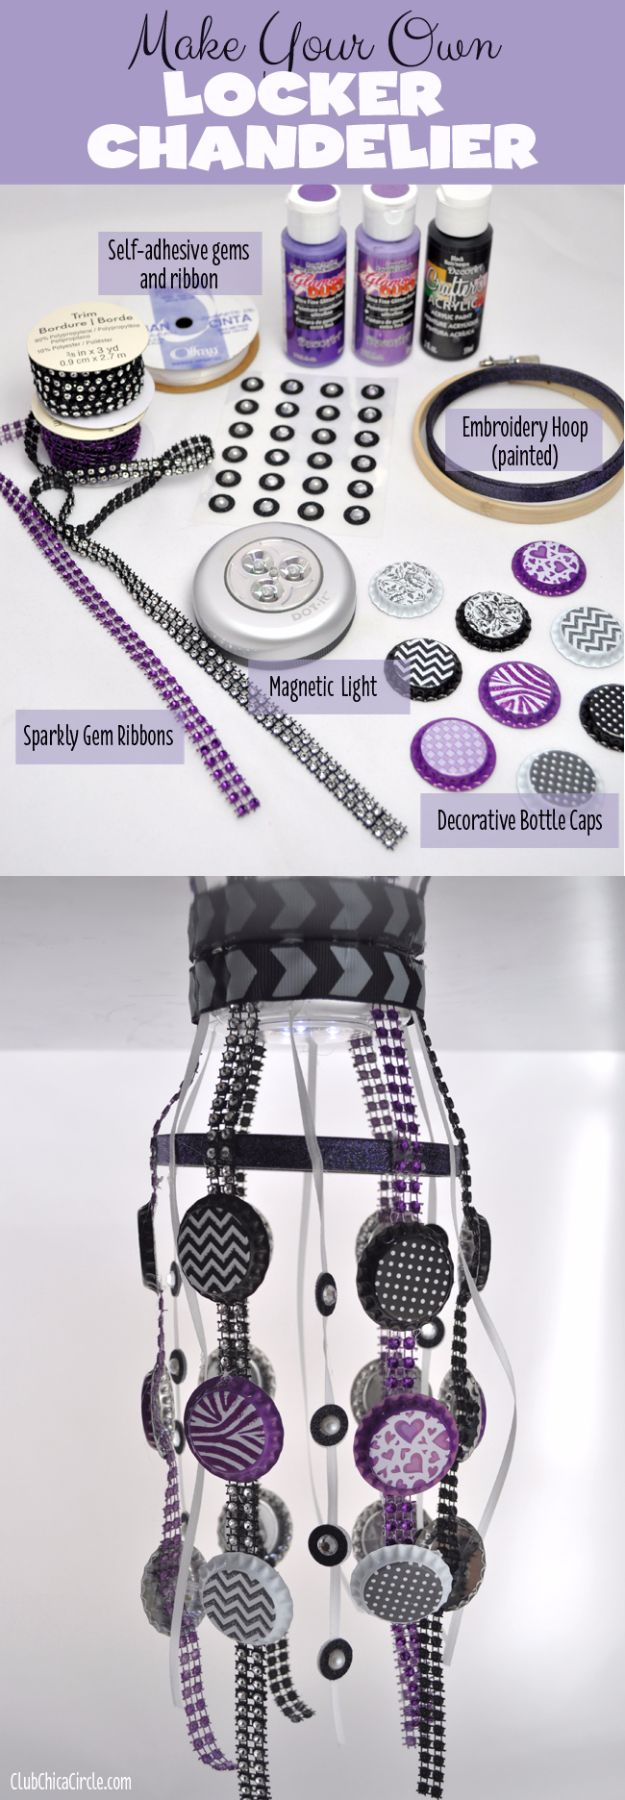 DIY School Supplies - Tween Locker Chandelier - Easy Crafts and Do It Yourself Ideas for Back To School - Pencils, Notebooks, Backpacks and Fun Gear for Going Back To Class - Creative DIY Projects for Cheap School Supplies - Cute Crafts for Teens and Kids http://diyprojectsforteens.com/diy-back-to-school-supplies